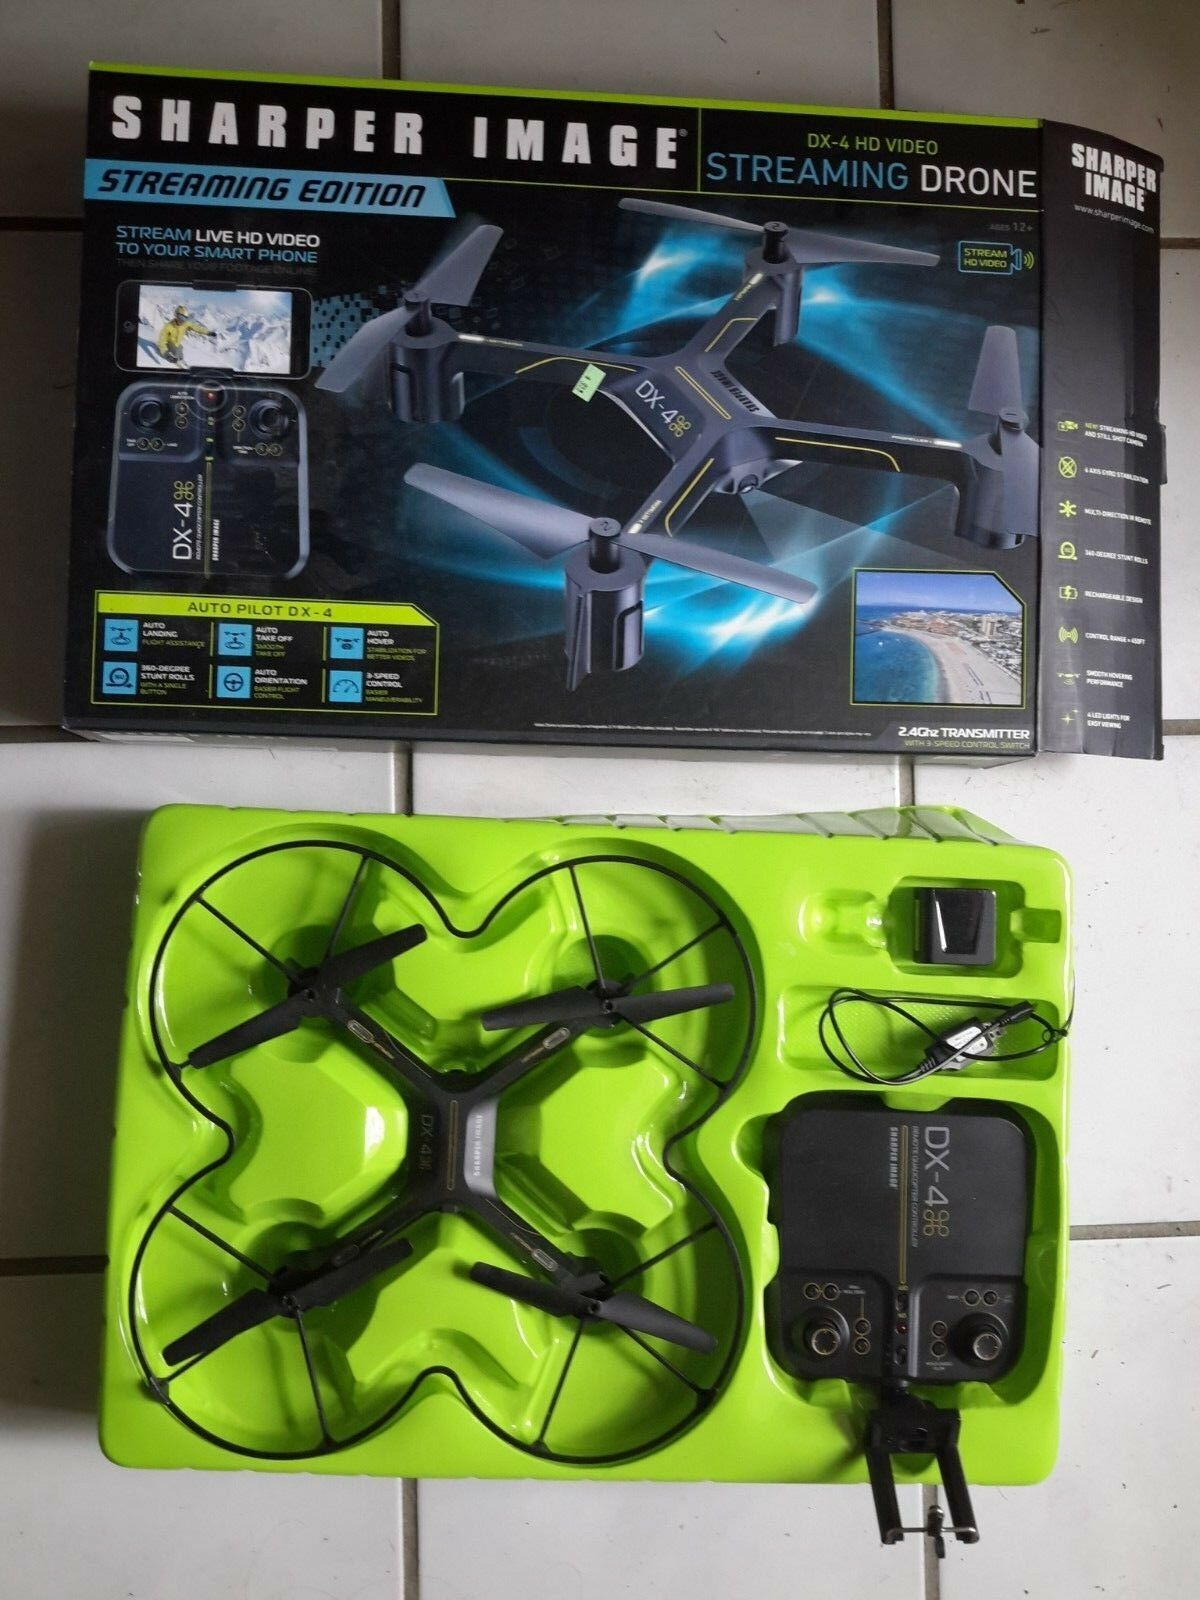 Sharper Image Drone DX-4 Streaming HD Video